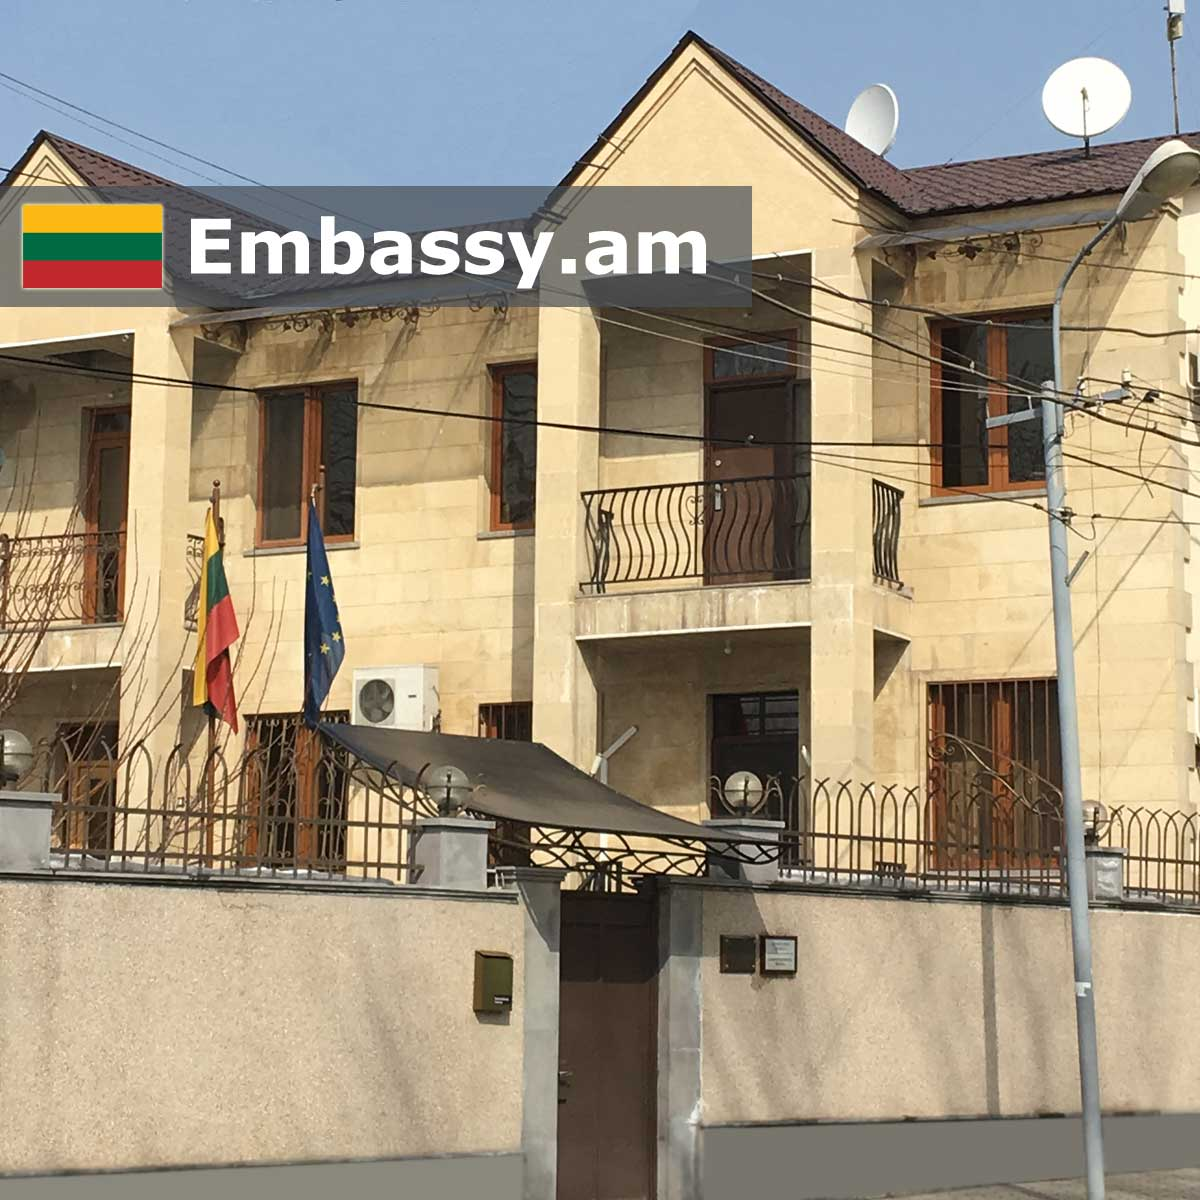 https://www.embassy.am/images/foreignmissions/lithuania-emb-in-yerevan.jpg